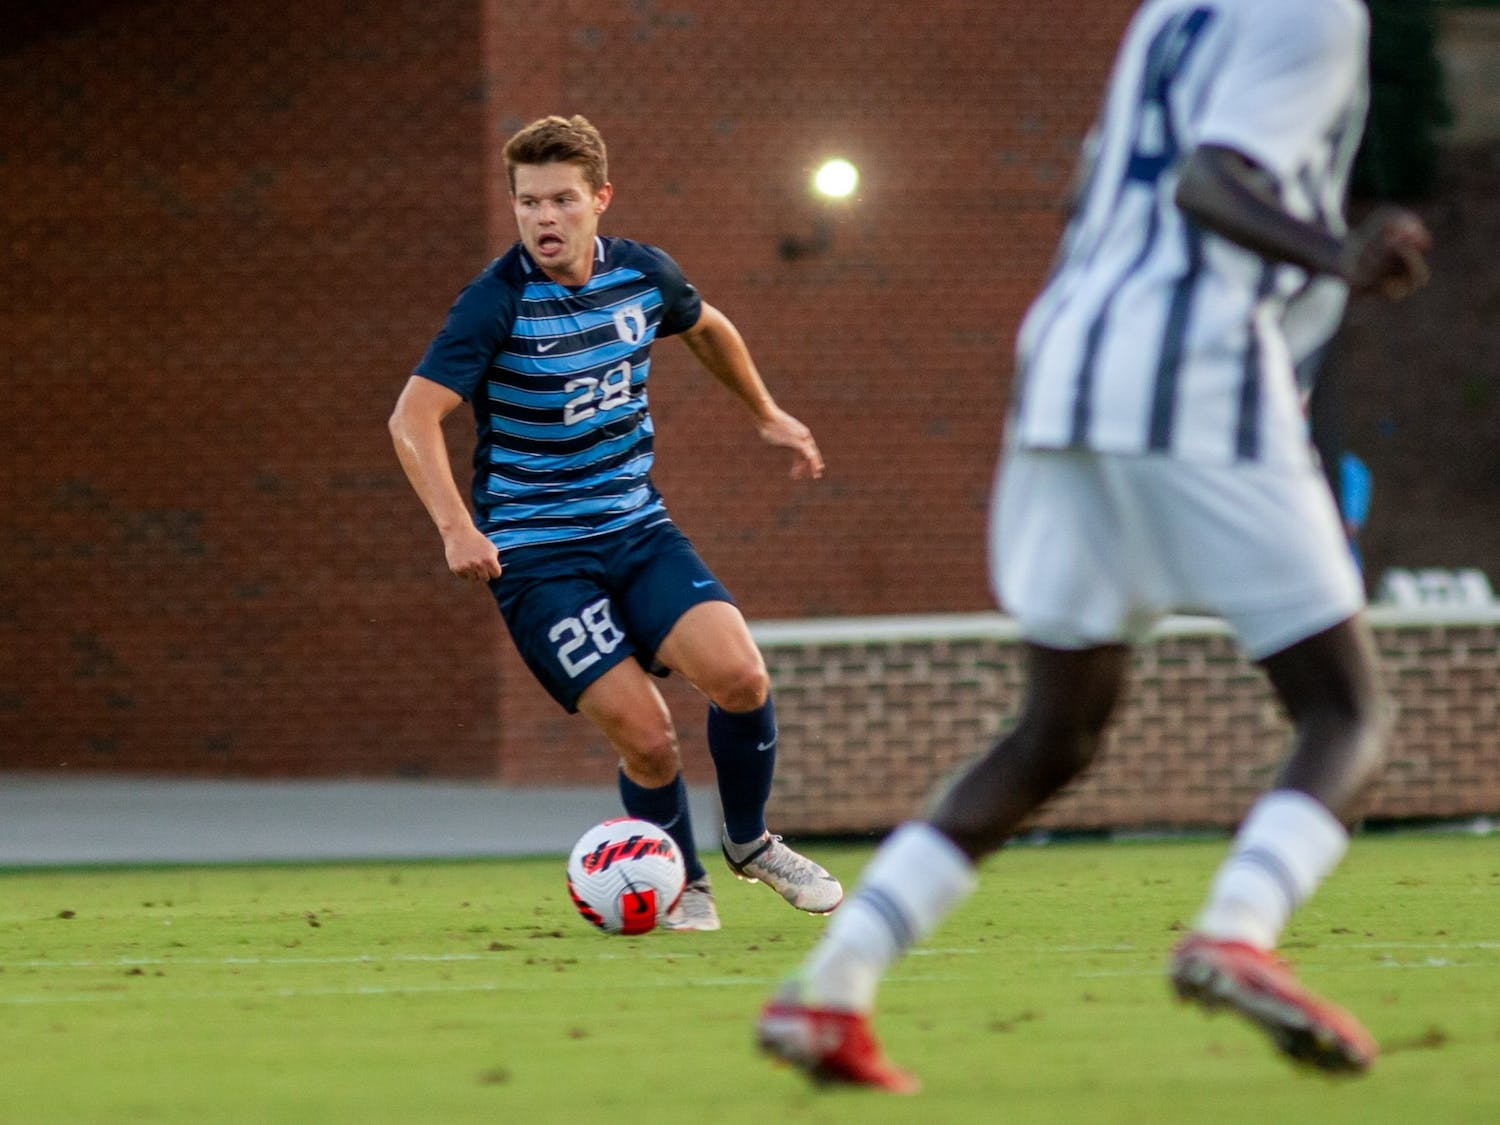 UNC sophomore midfielder Tim Schels (28) maintains posession of the ball at the UNC v. Georgia Southern game at Dorrance Field on Sept. 3.